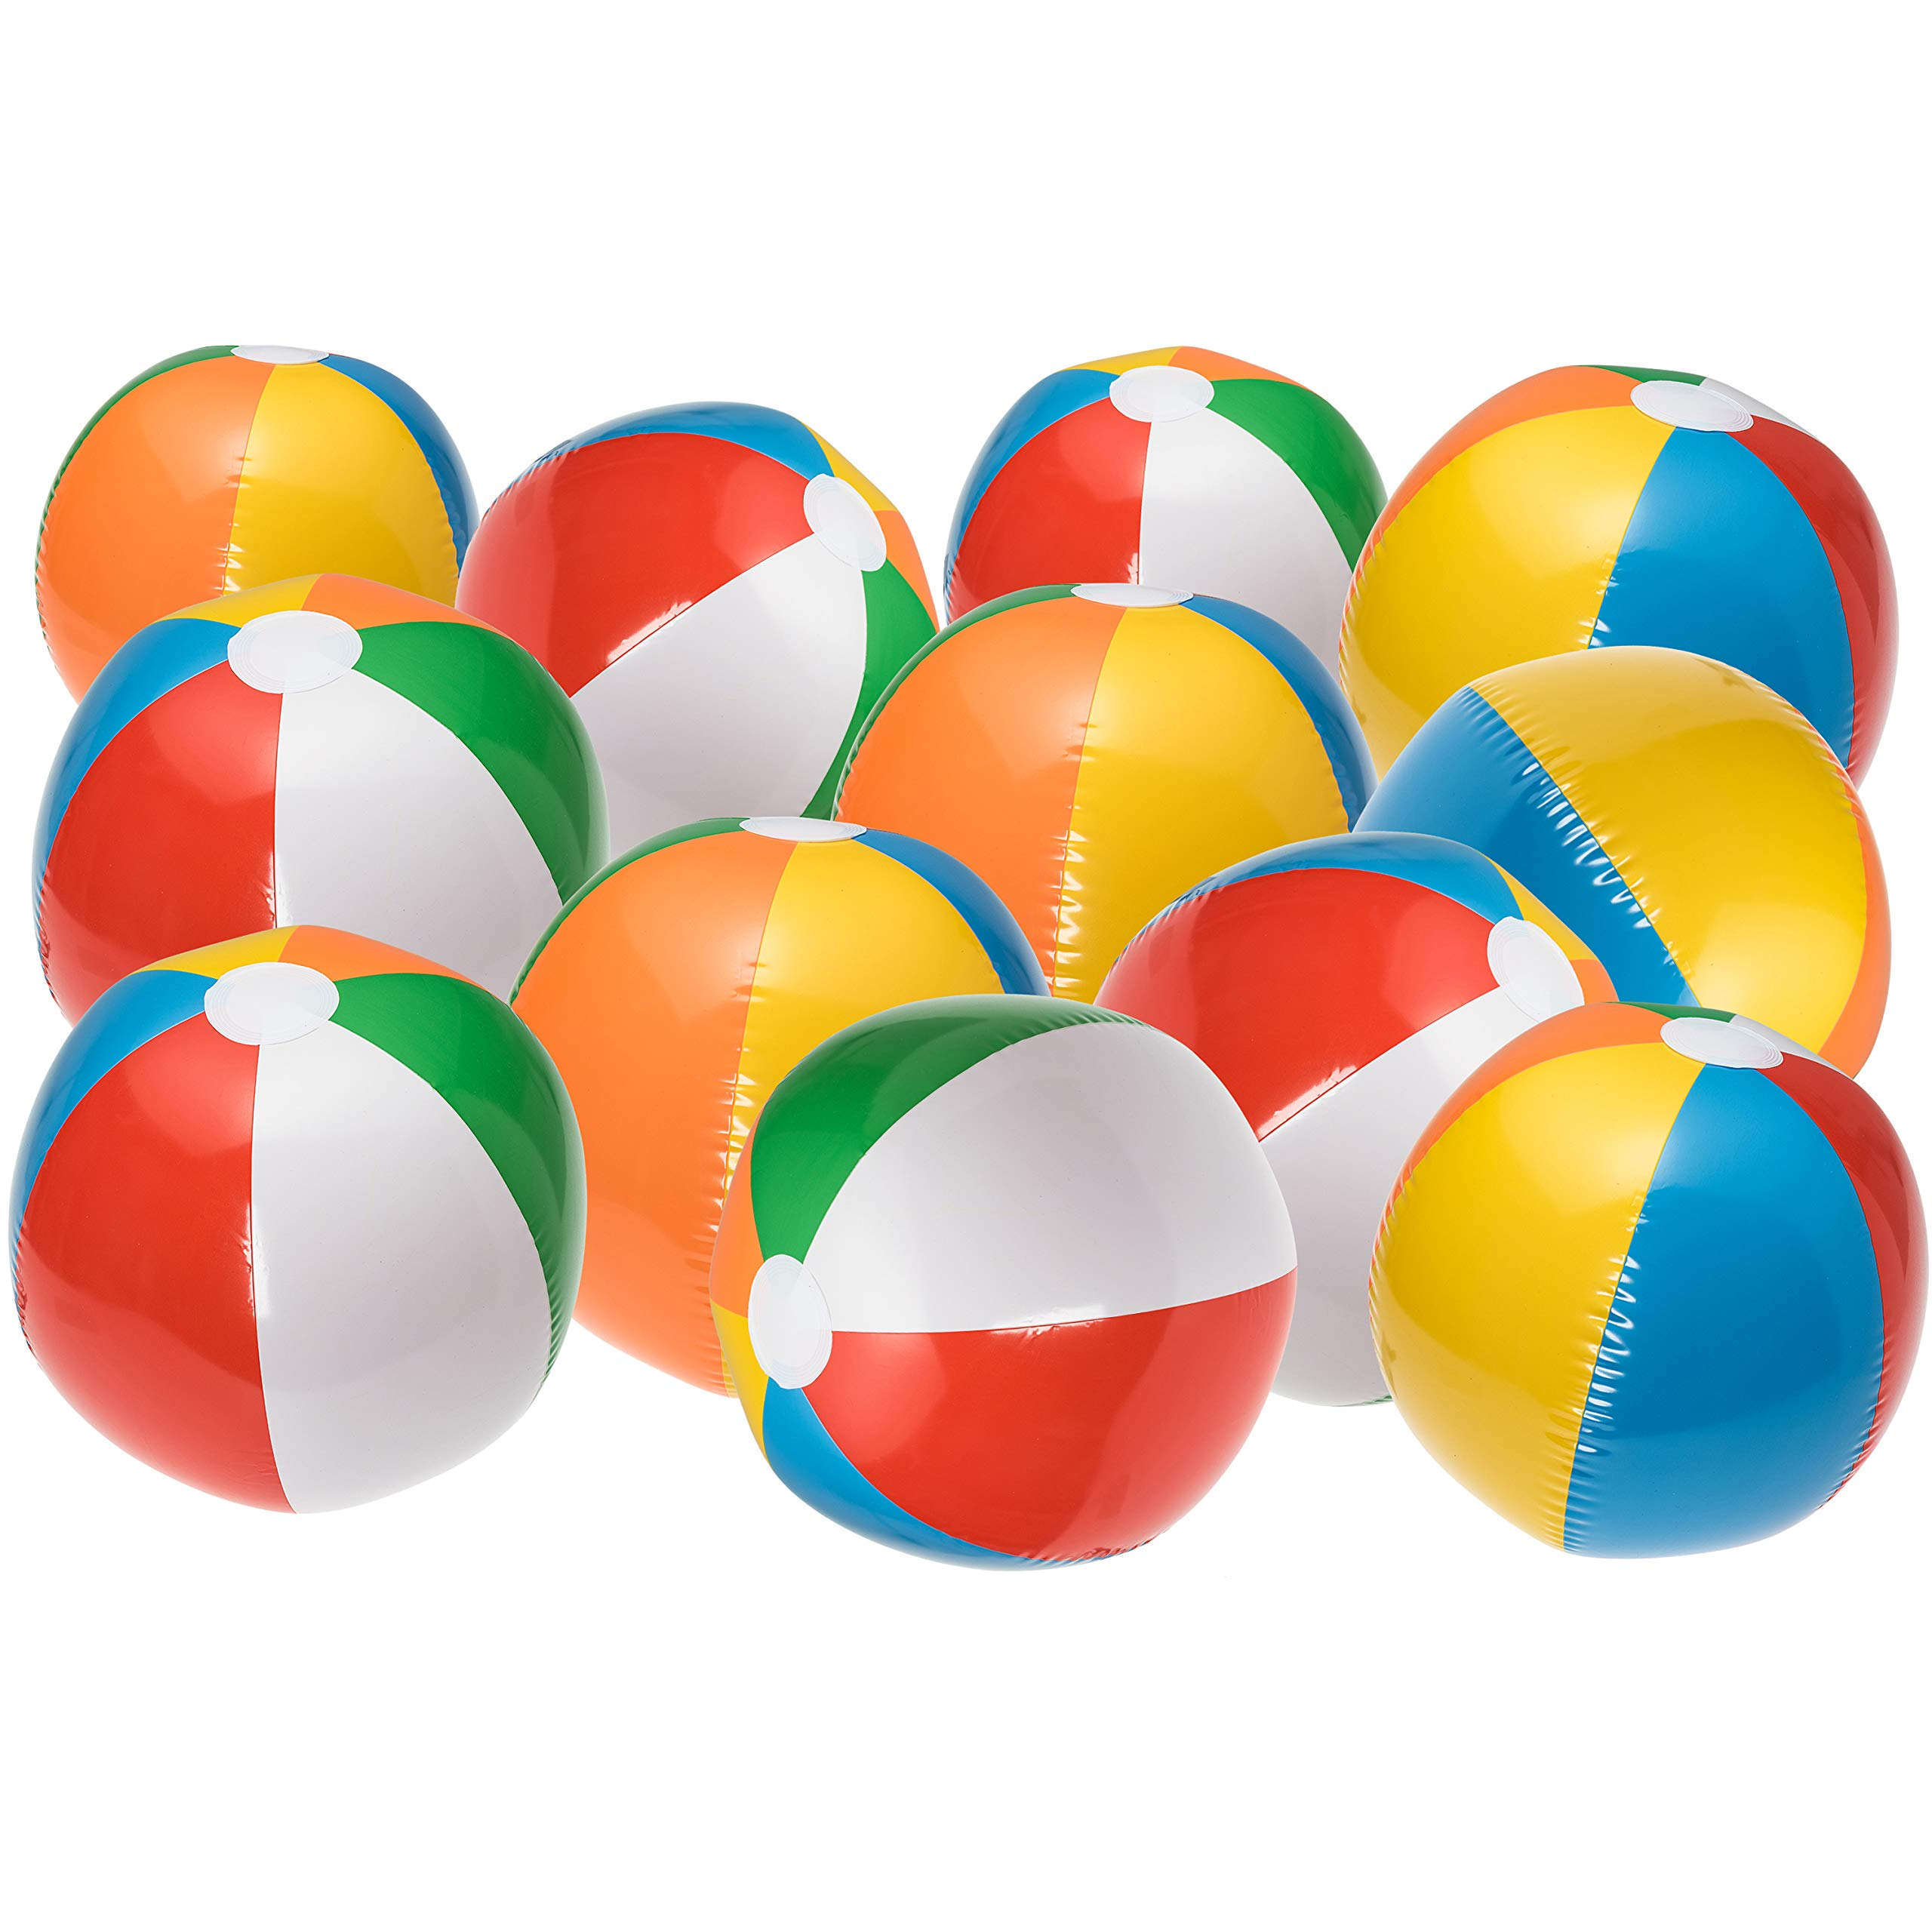 NJ Novelty Large Inflatable Beach Balls 20 Inch, Pack of 12 Rainbow Colored for Pool Party, Summer Water Fun and Birthday Parties - Bulk Pack for Adults and Children by NJ Novelty